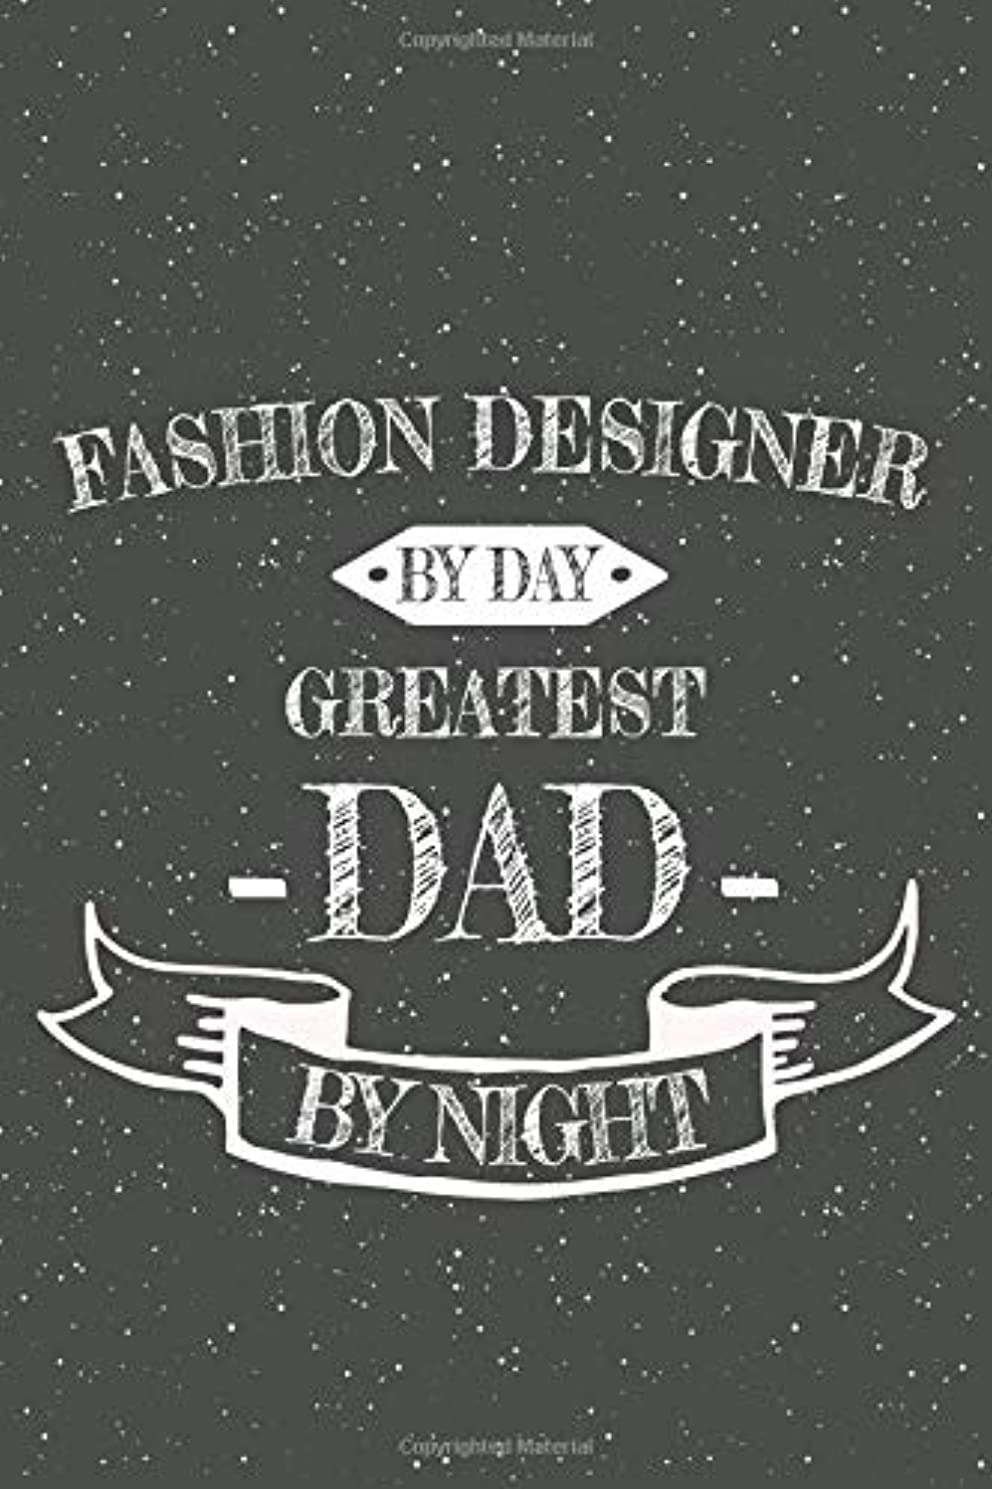 Fashion Designer  By Day Greatest Dad By Night: Notebook, Planner or Journal | Size 6 x 9 | 110 Lined Pages | Office Equipment, Supplies | Great Gift ... Christmas or Birthday for a Fashion Designer